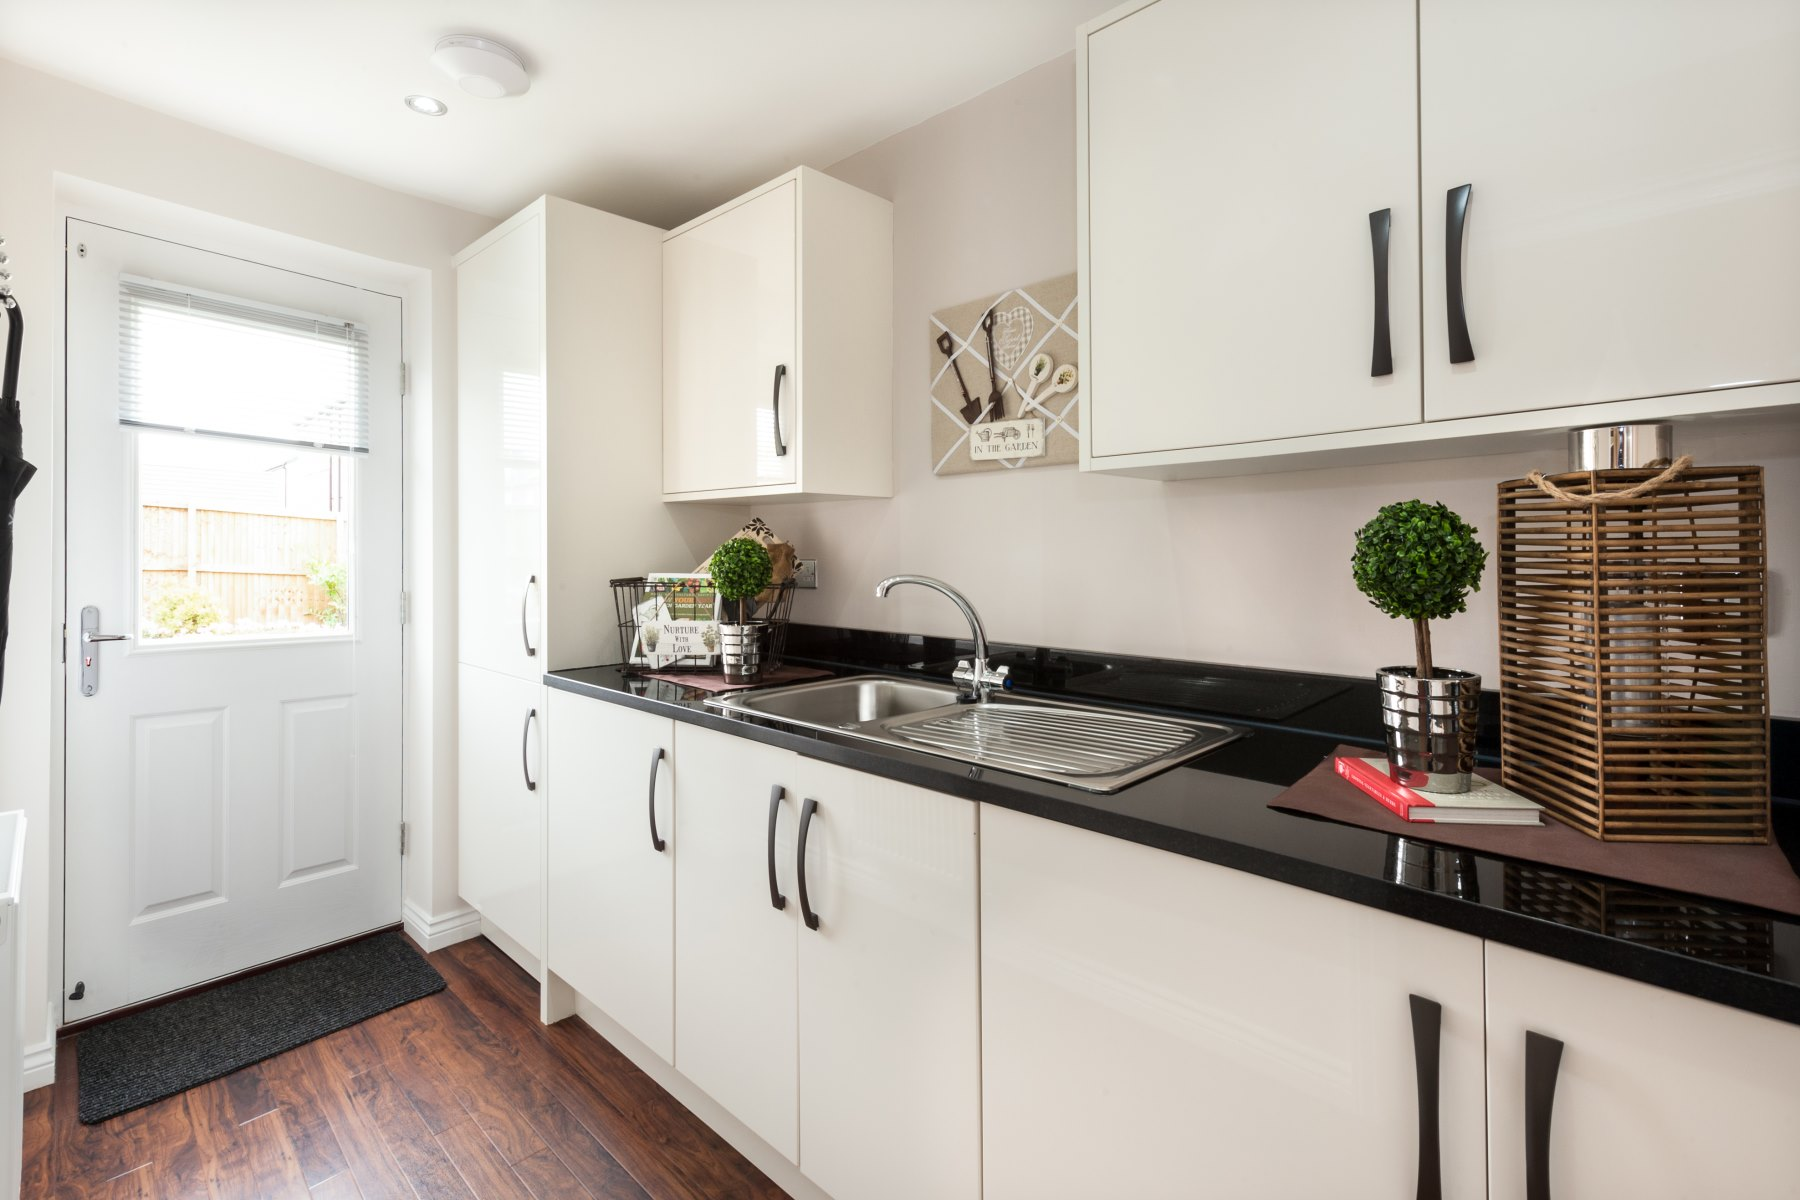 007_Kitchen_Haddenham